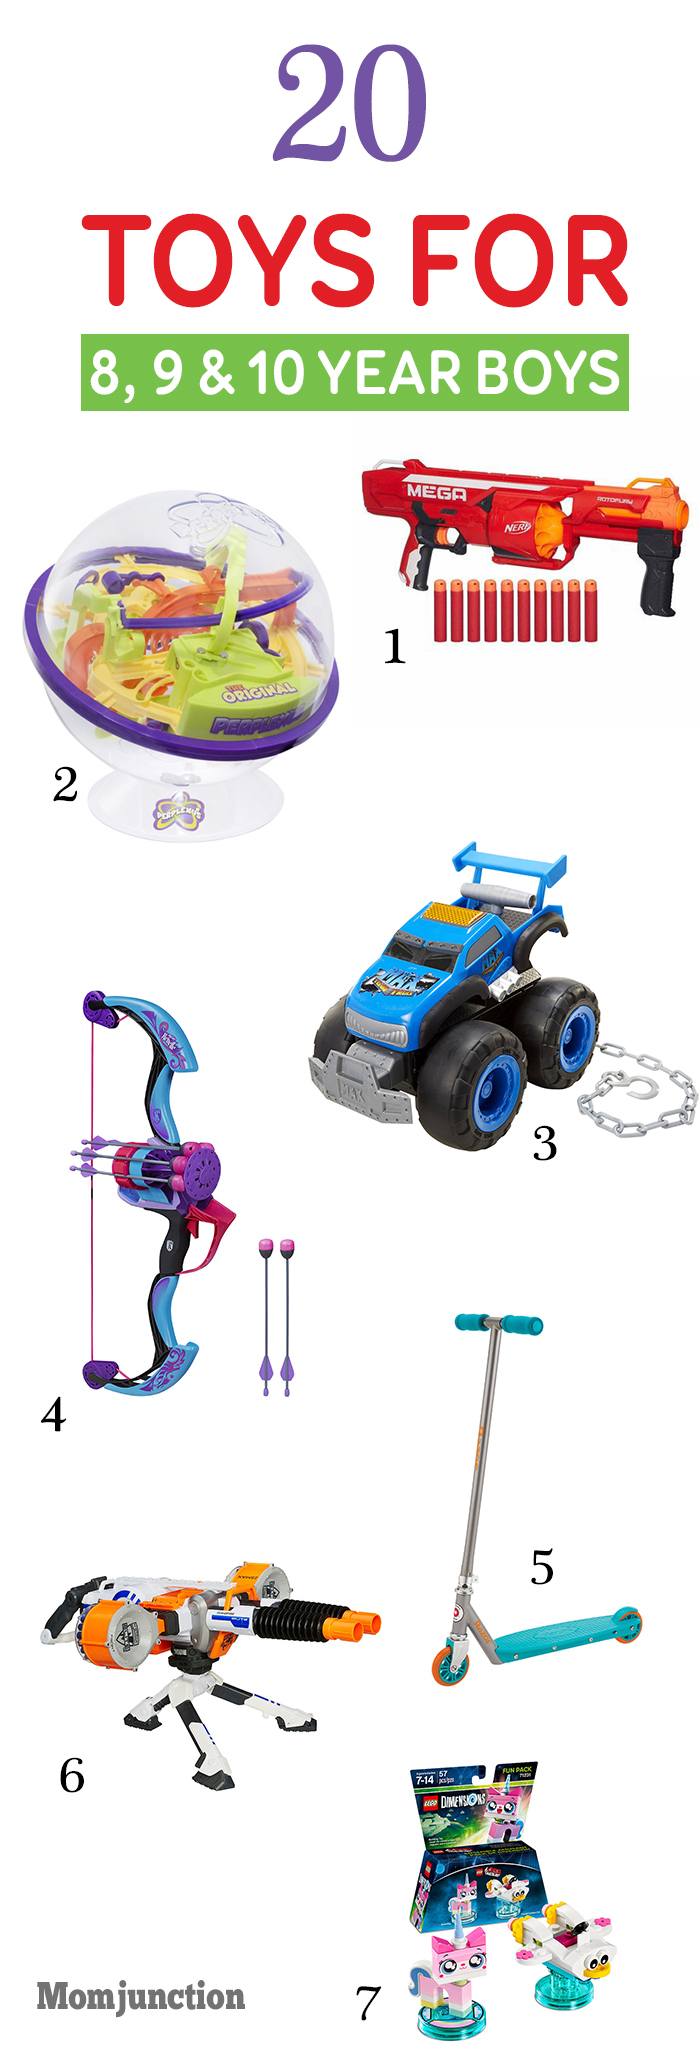 Toys for 10 yr old boys